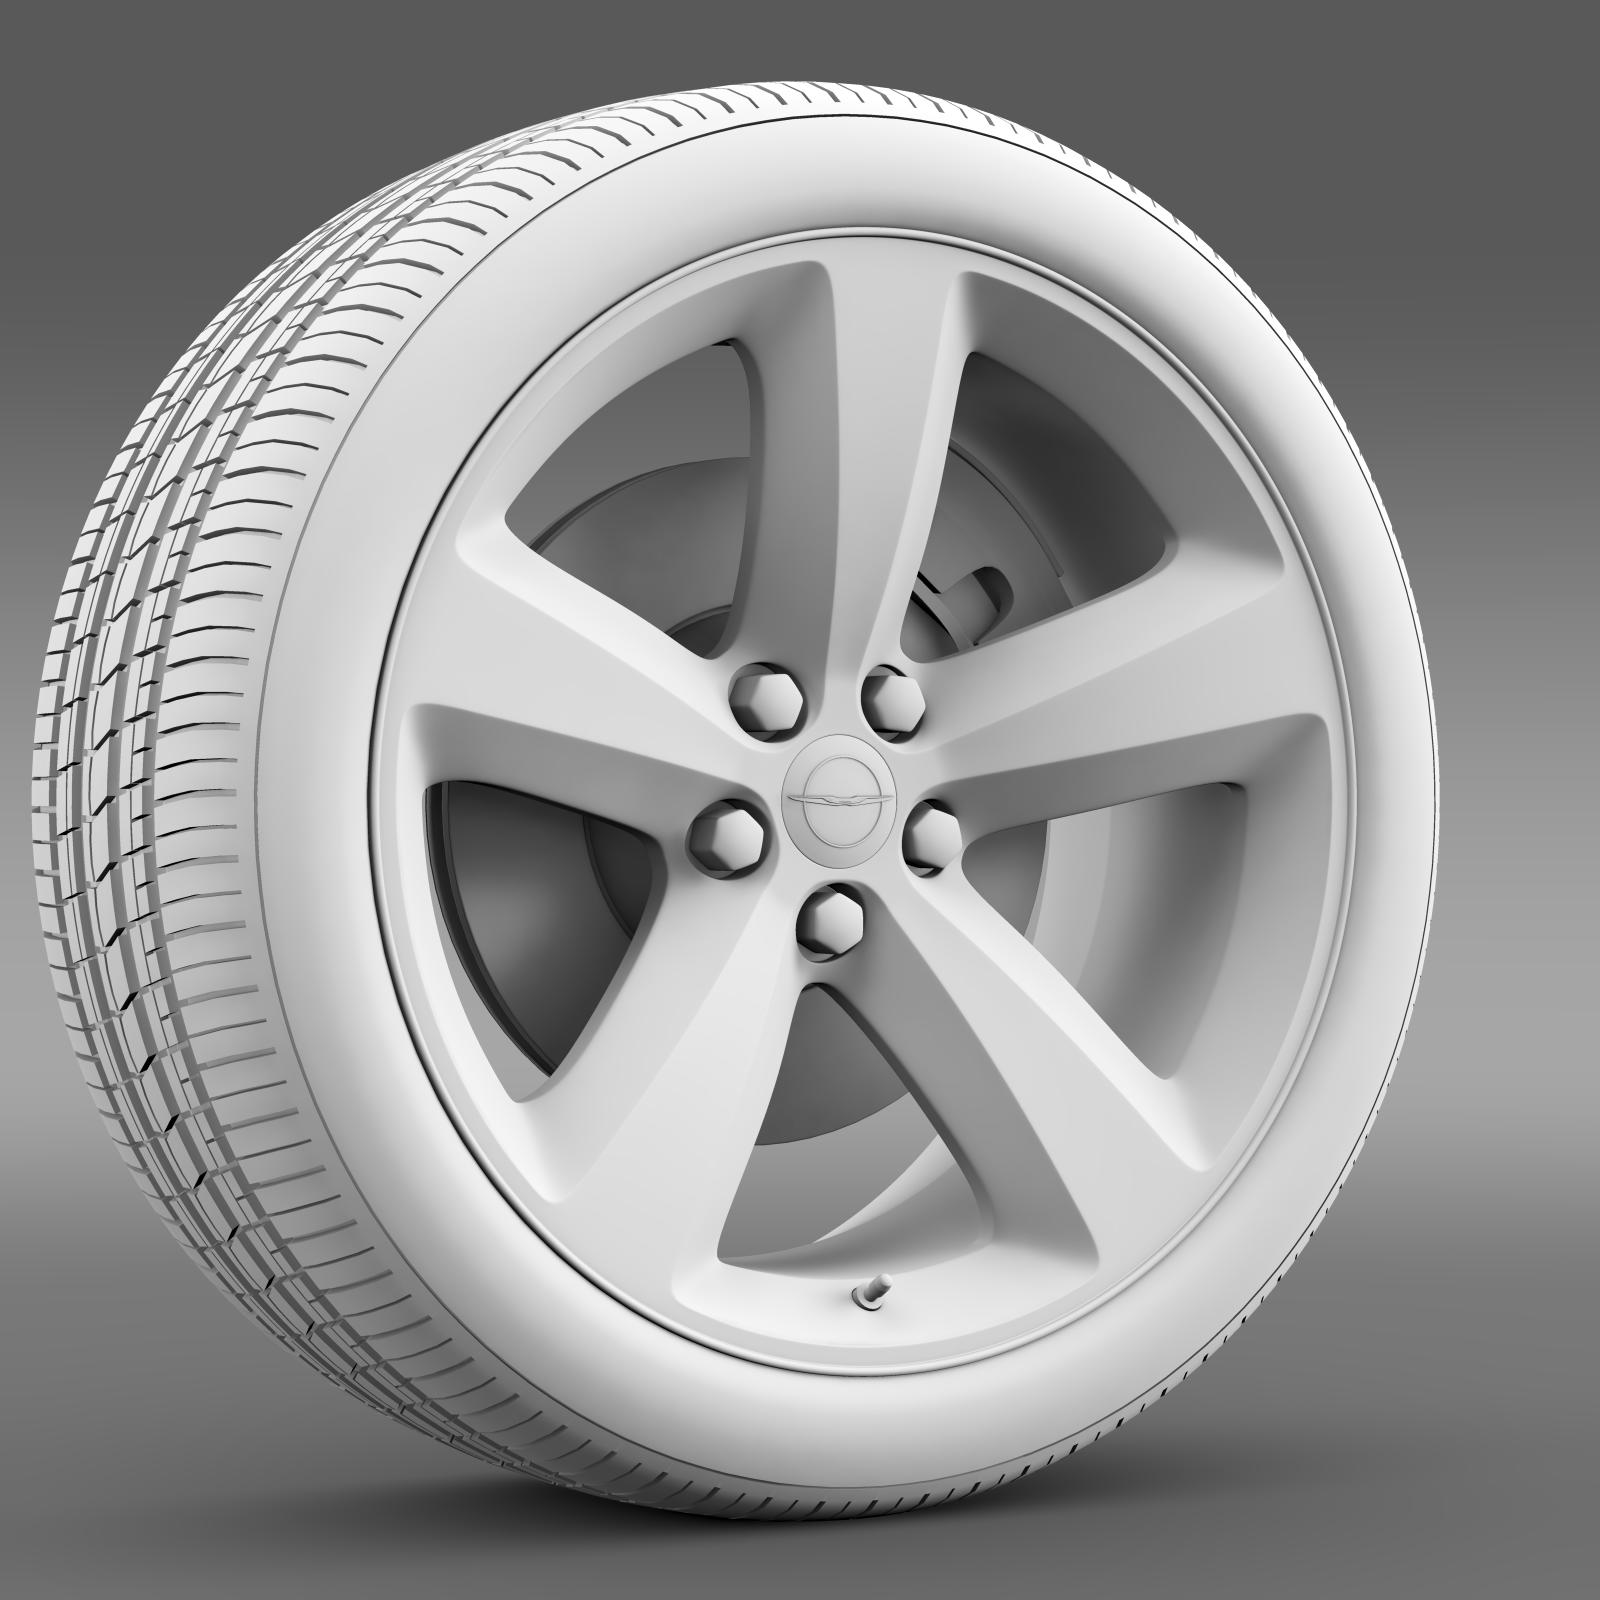 chrysler 300s wheel 3d model 3ds max fbx c4d lwo ma mb hrc xsi obj 210676